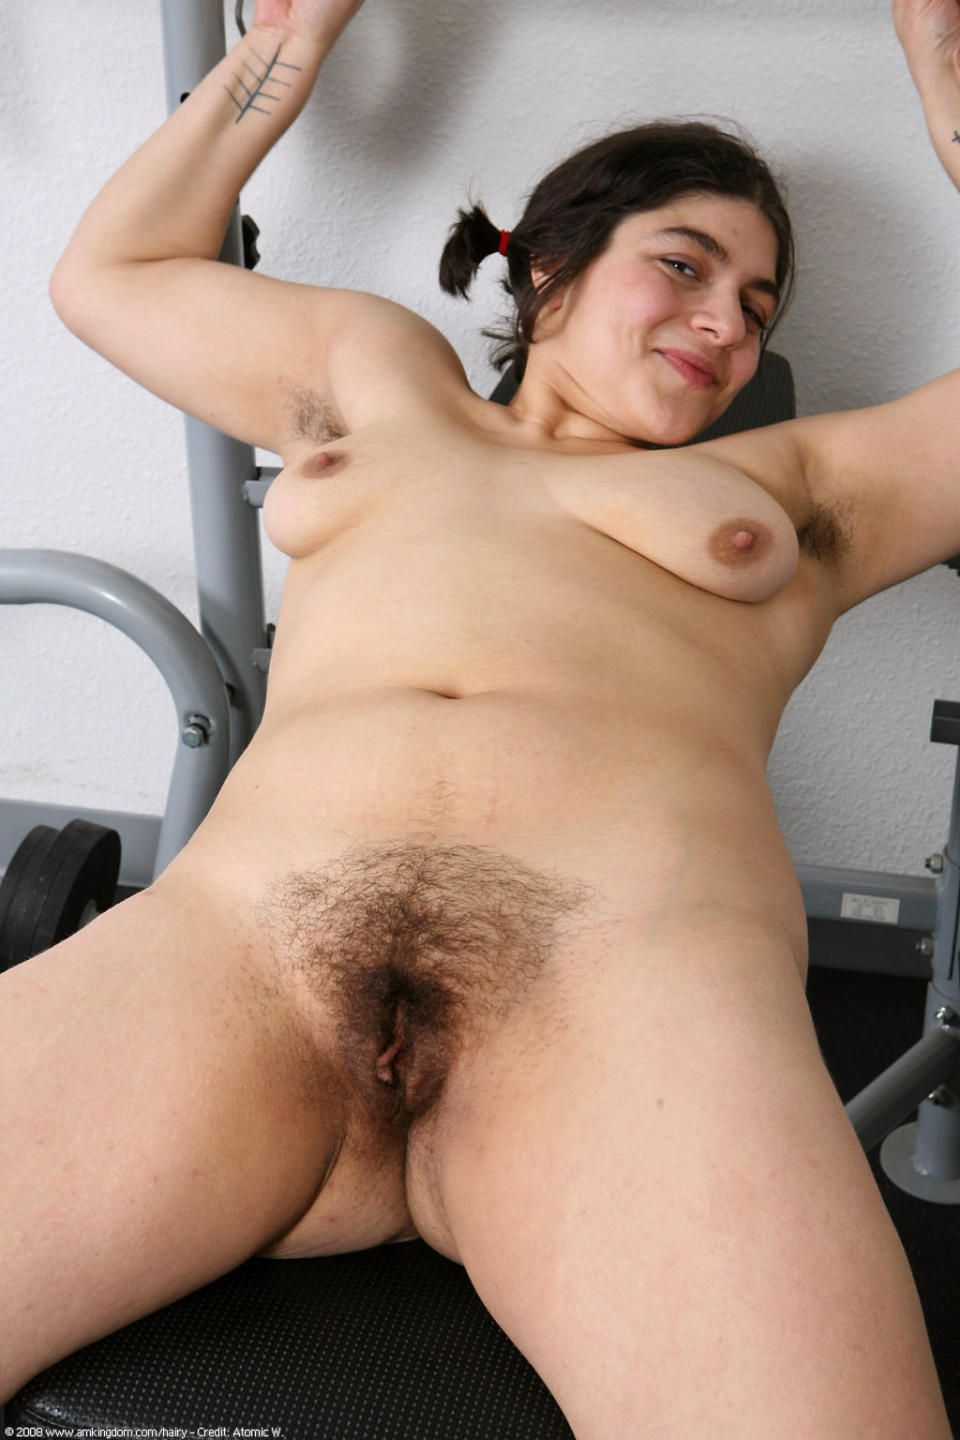 tumblr beauty hairy girls